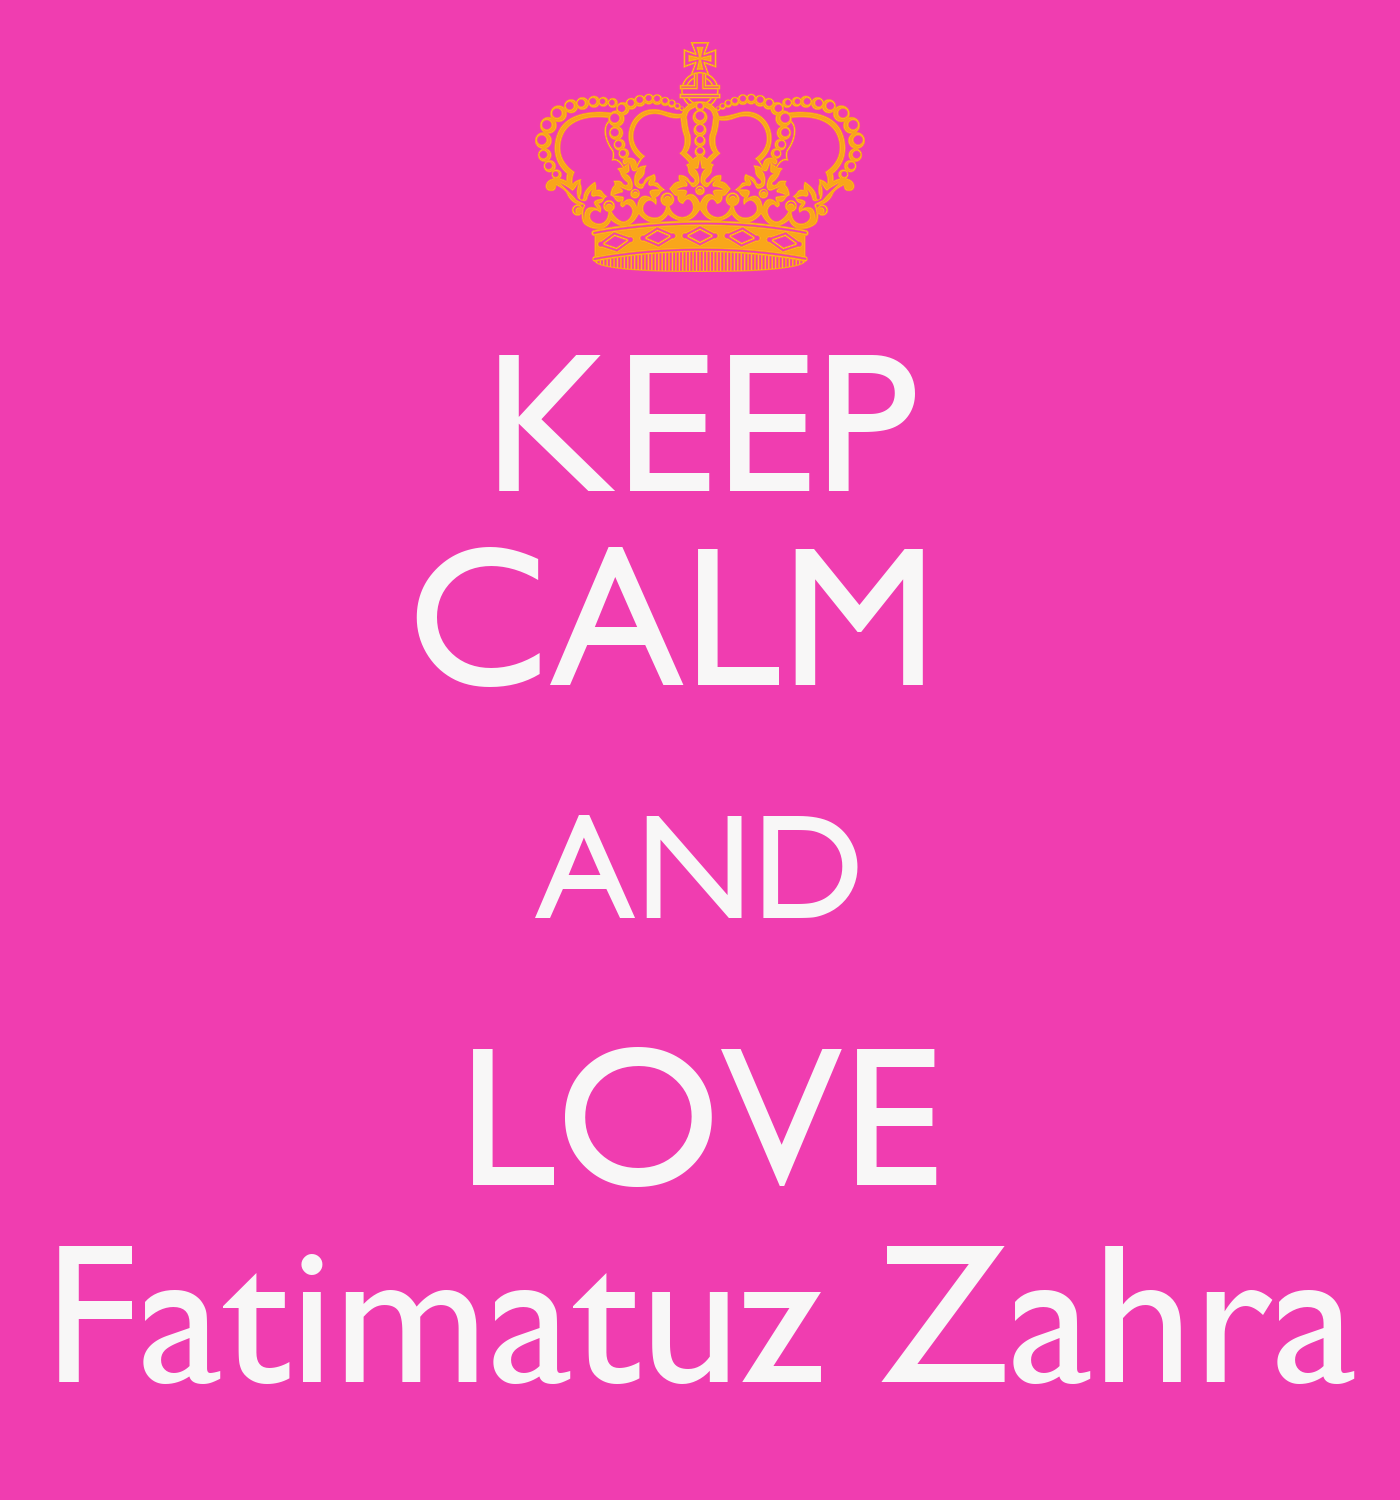 I Love Zahra Wallpapers : KEEP cALM AND LOVE Fatimatuz Zahra - KEEP cALM AND cARRY ...